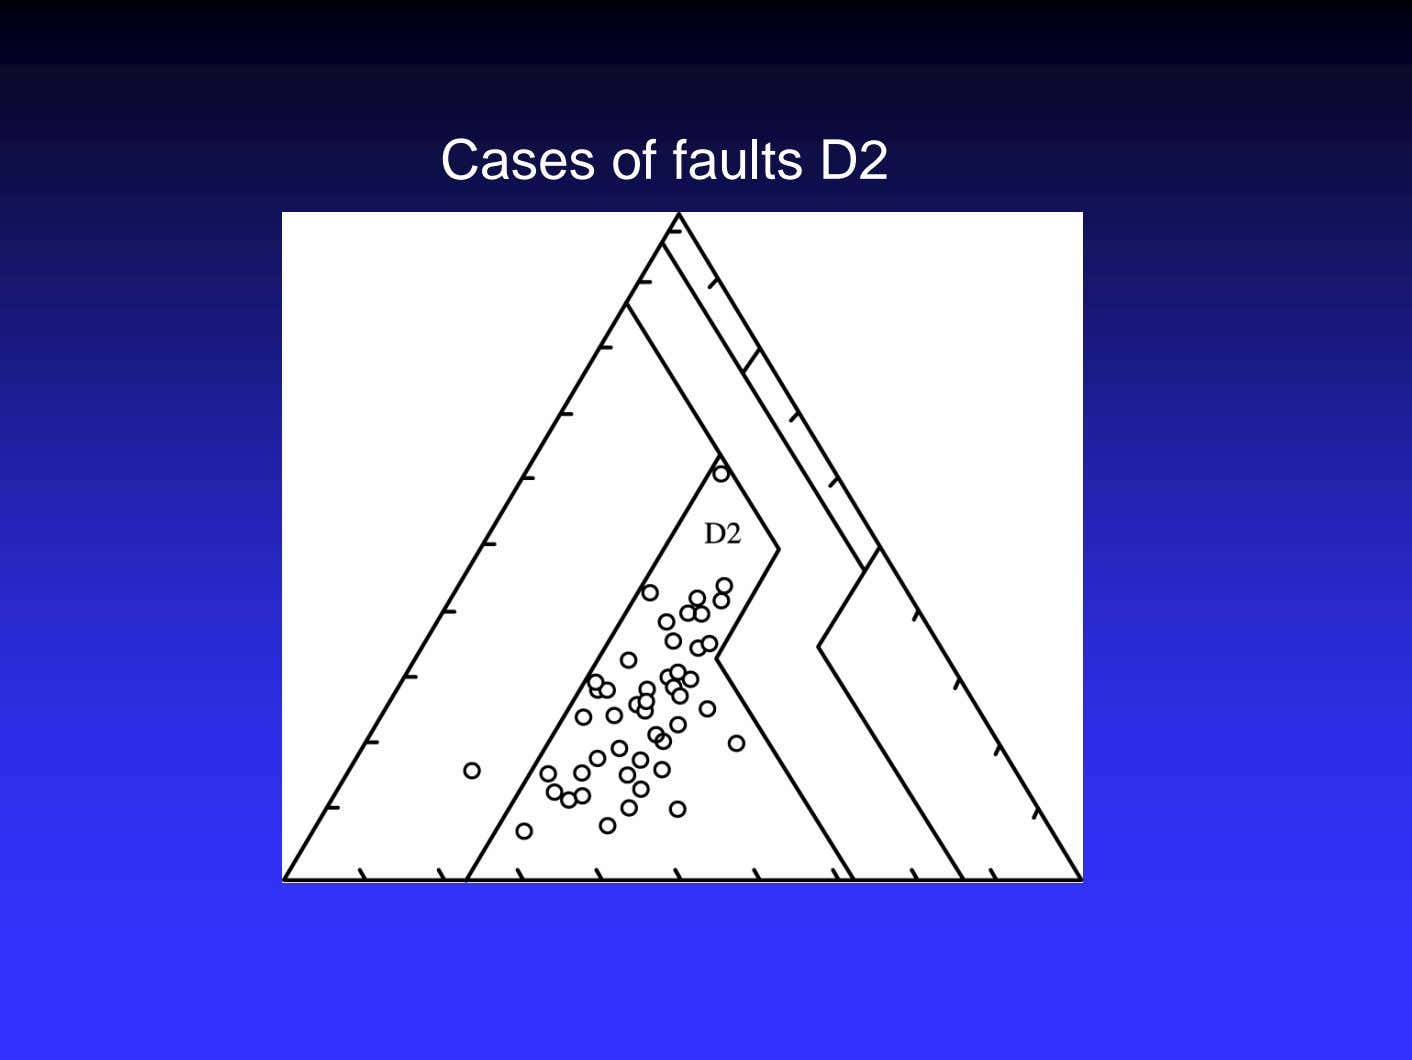 Cases of faults D2